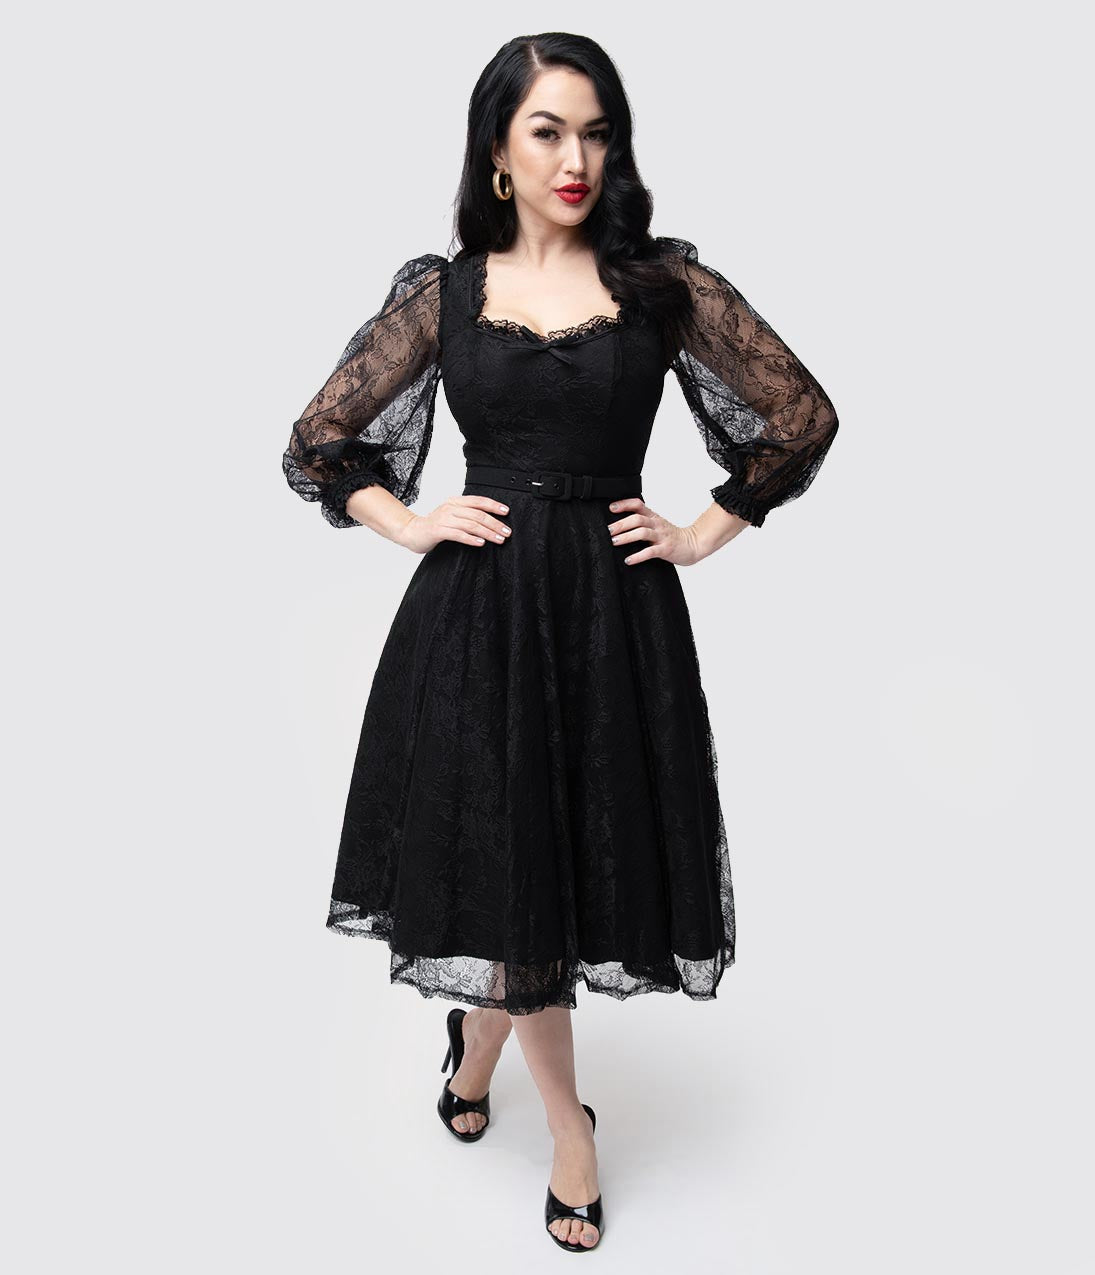 1940s Dresses | 40s Dress, Swing Dress Vixen By Micheline Pitt Black Lace Decadence Swing Dress $186.00 AT vintagedancer.com